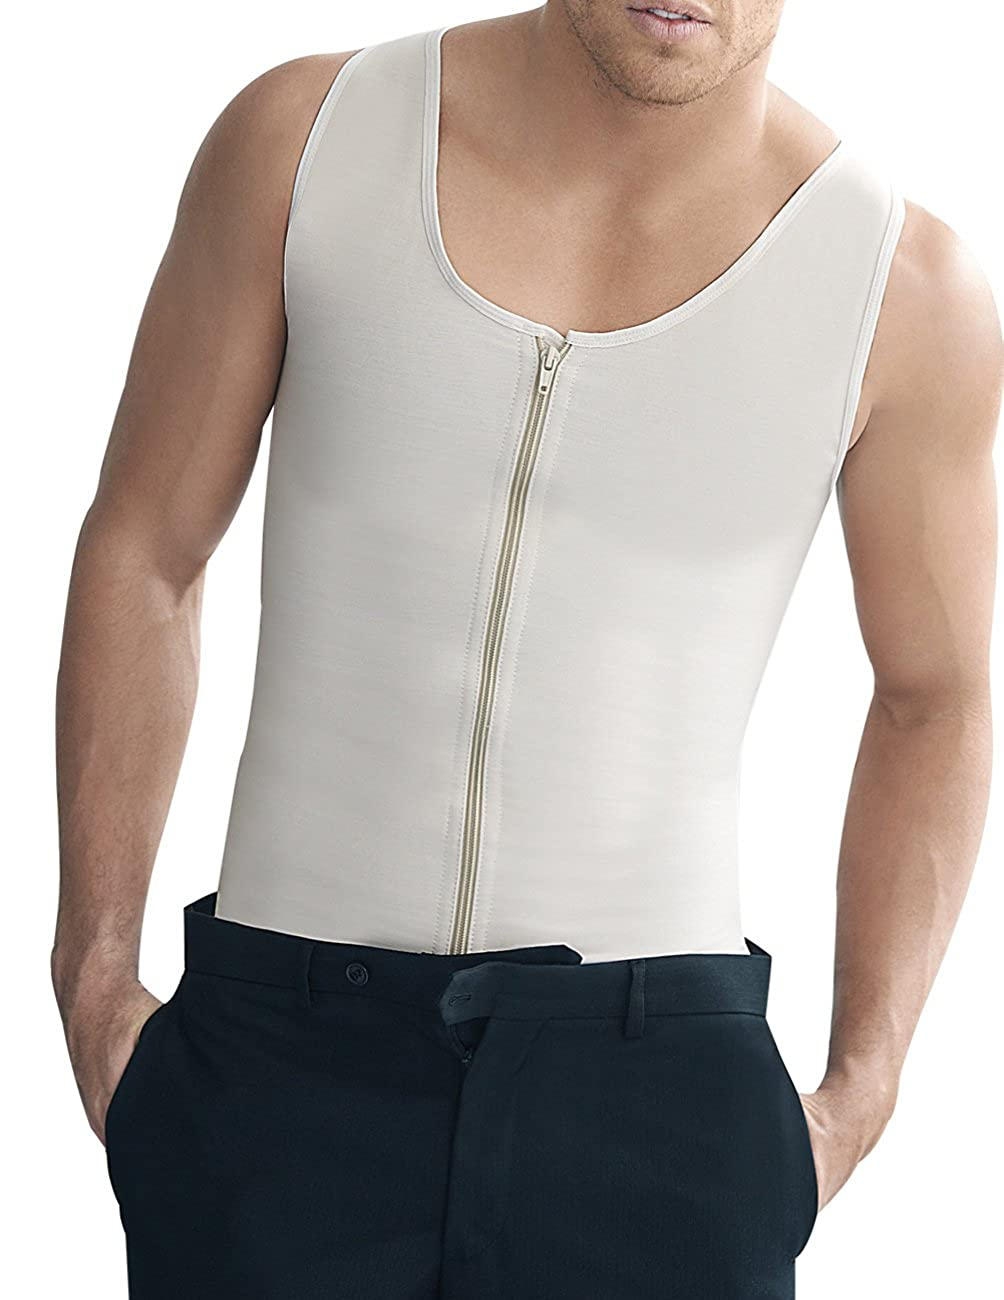 Ann Chery Mens Latex Girdle Body Shaper 2034 Vest